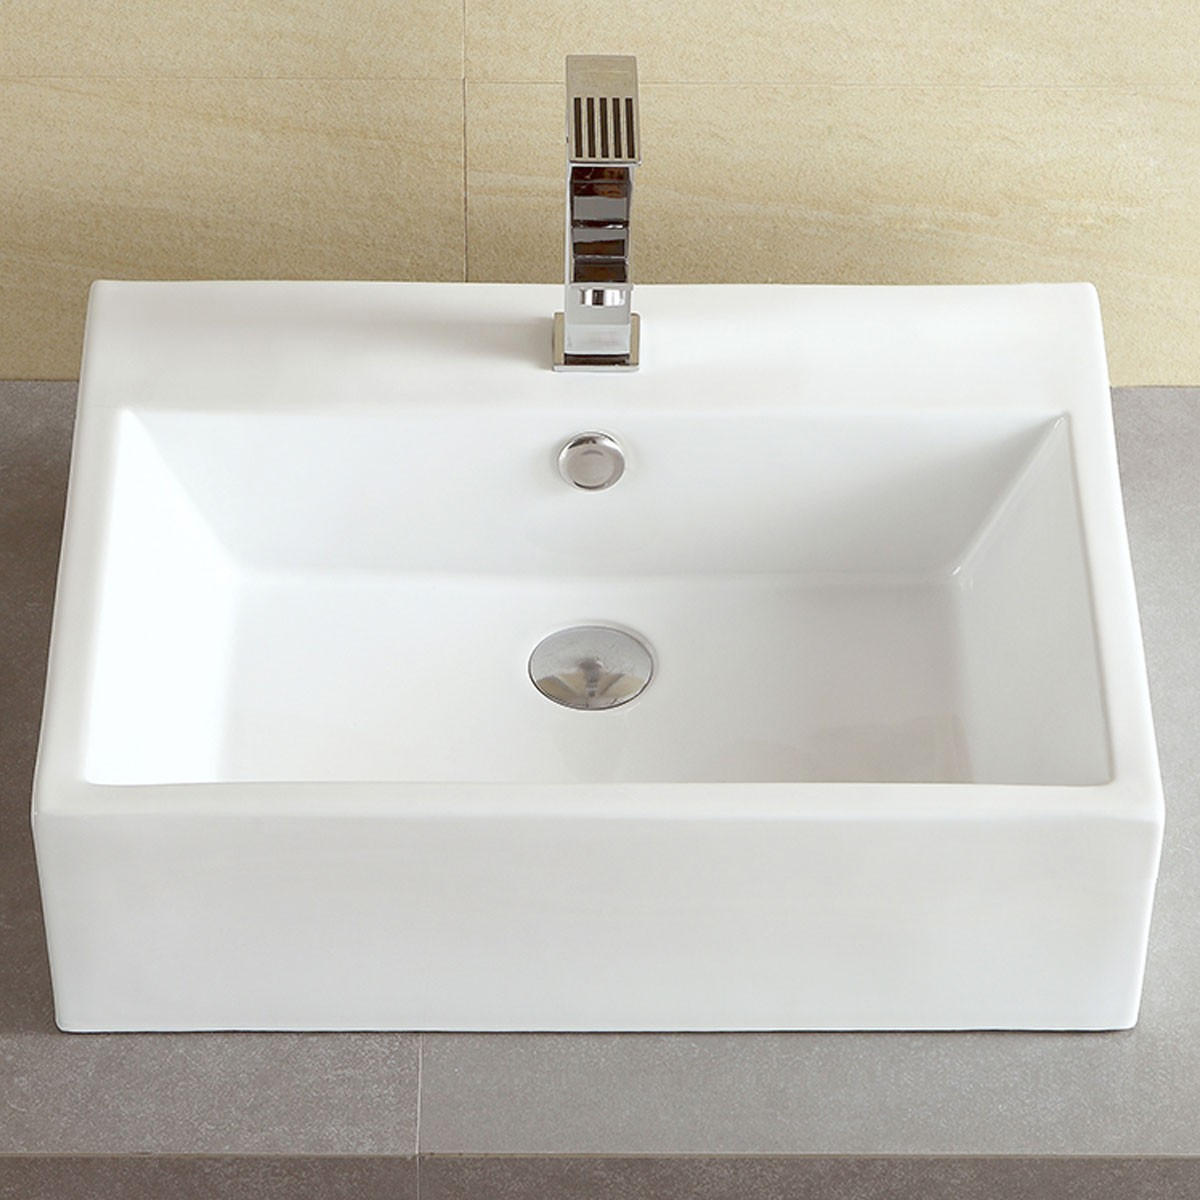 Decoraport White Rectangle Ceramic Above Counter Basin Vessel Vanity Sink Cl 1094